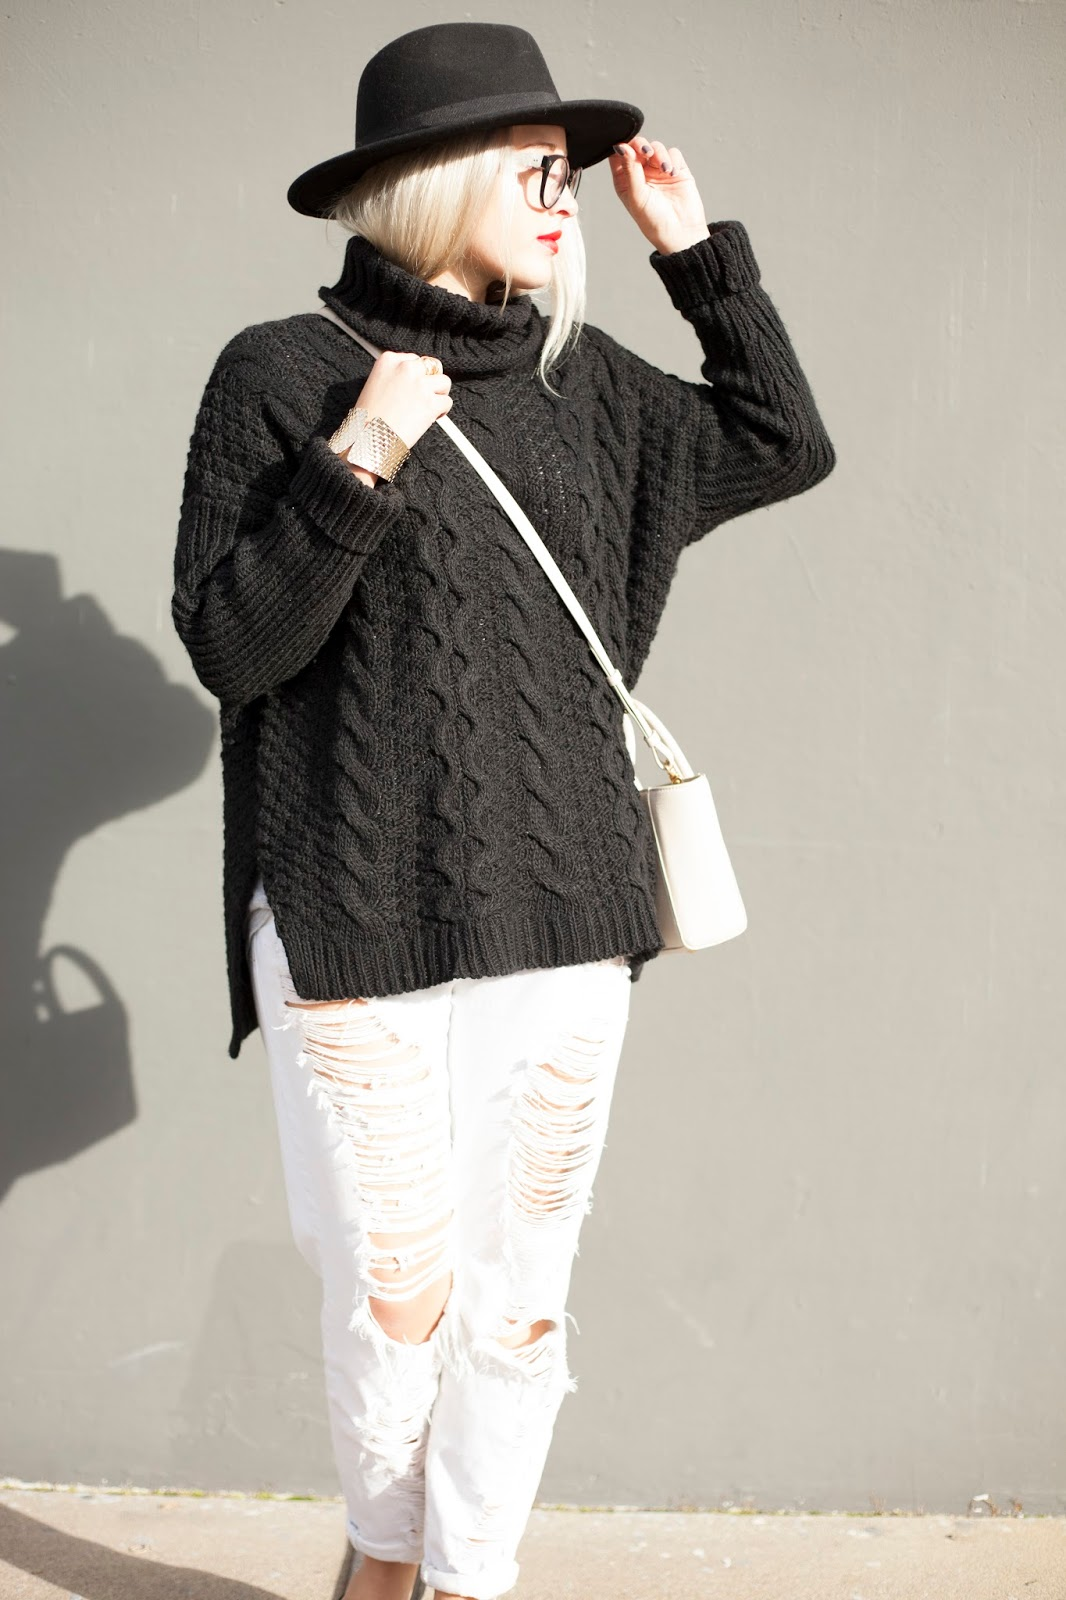 Black Chunky Turtleneck Sweater and White Distressed Denim, perfect San Francisco style!